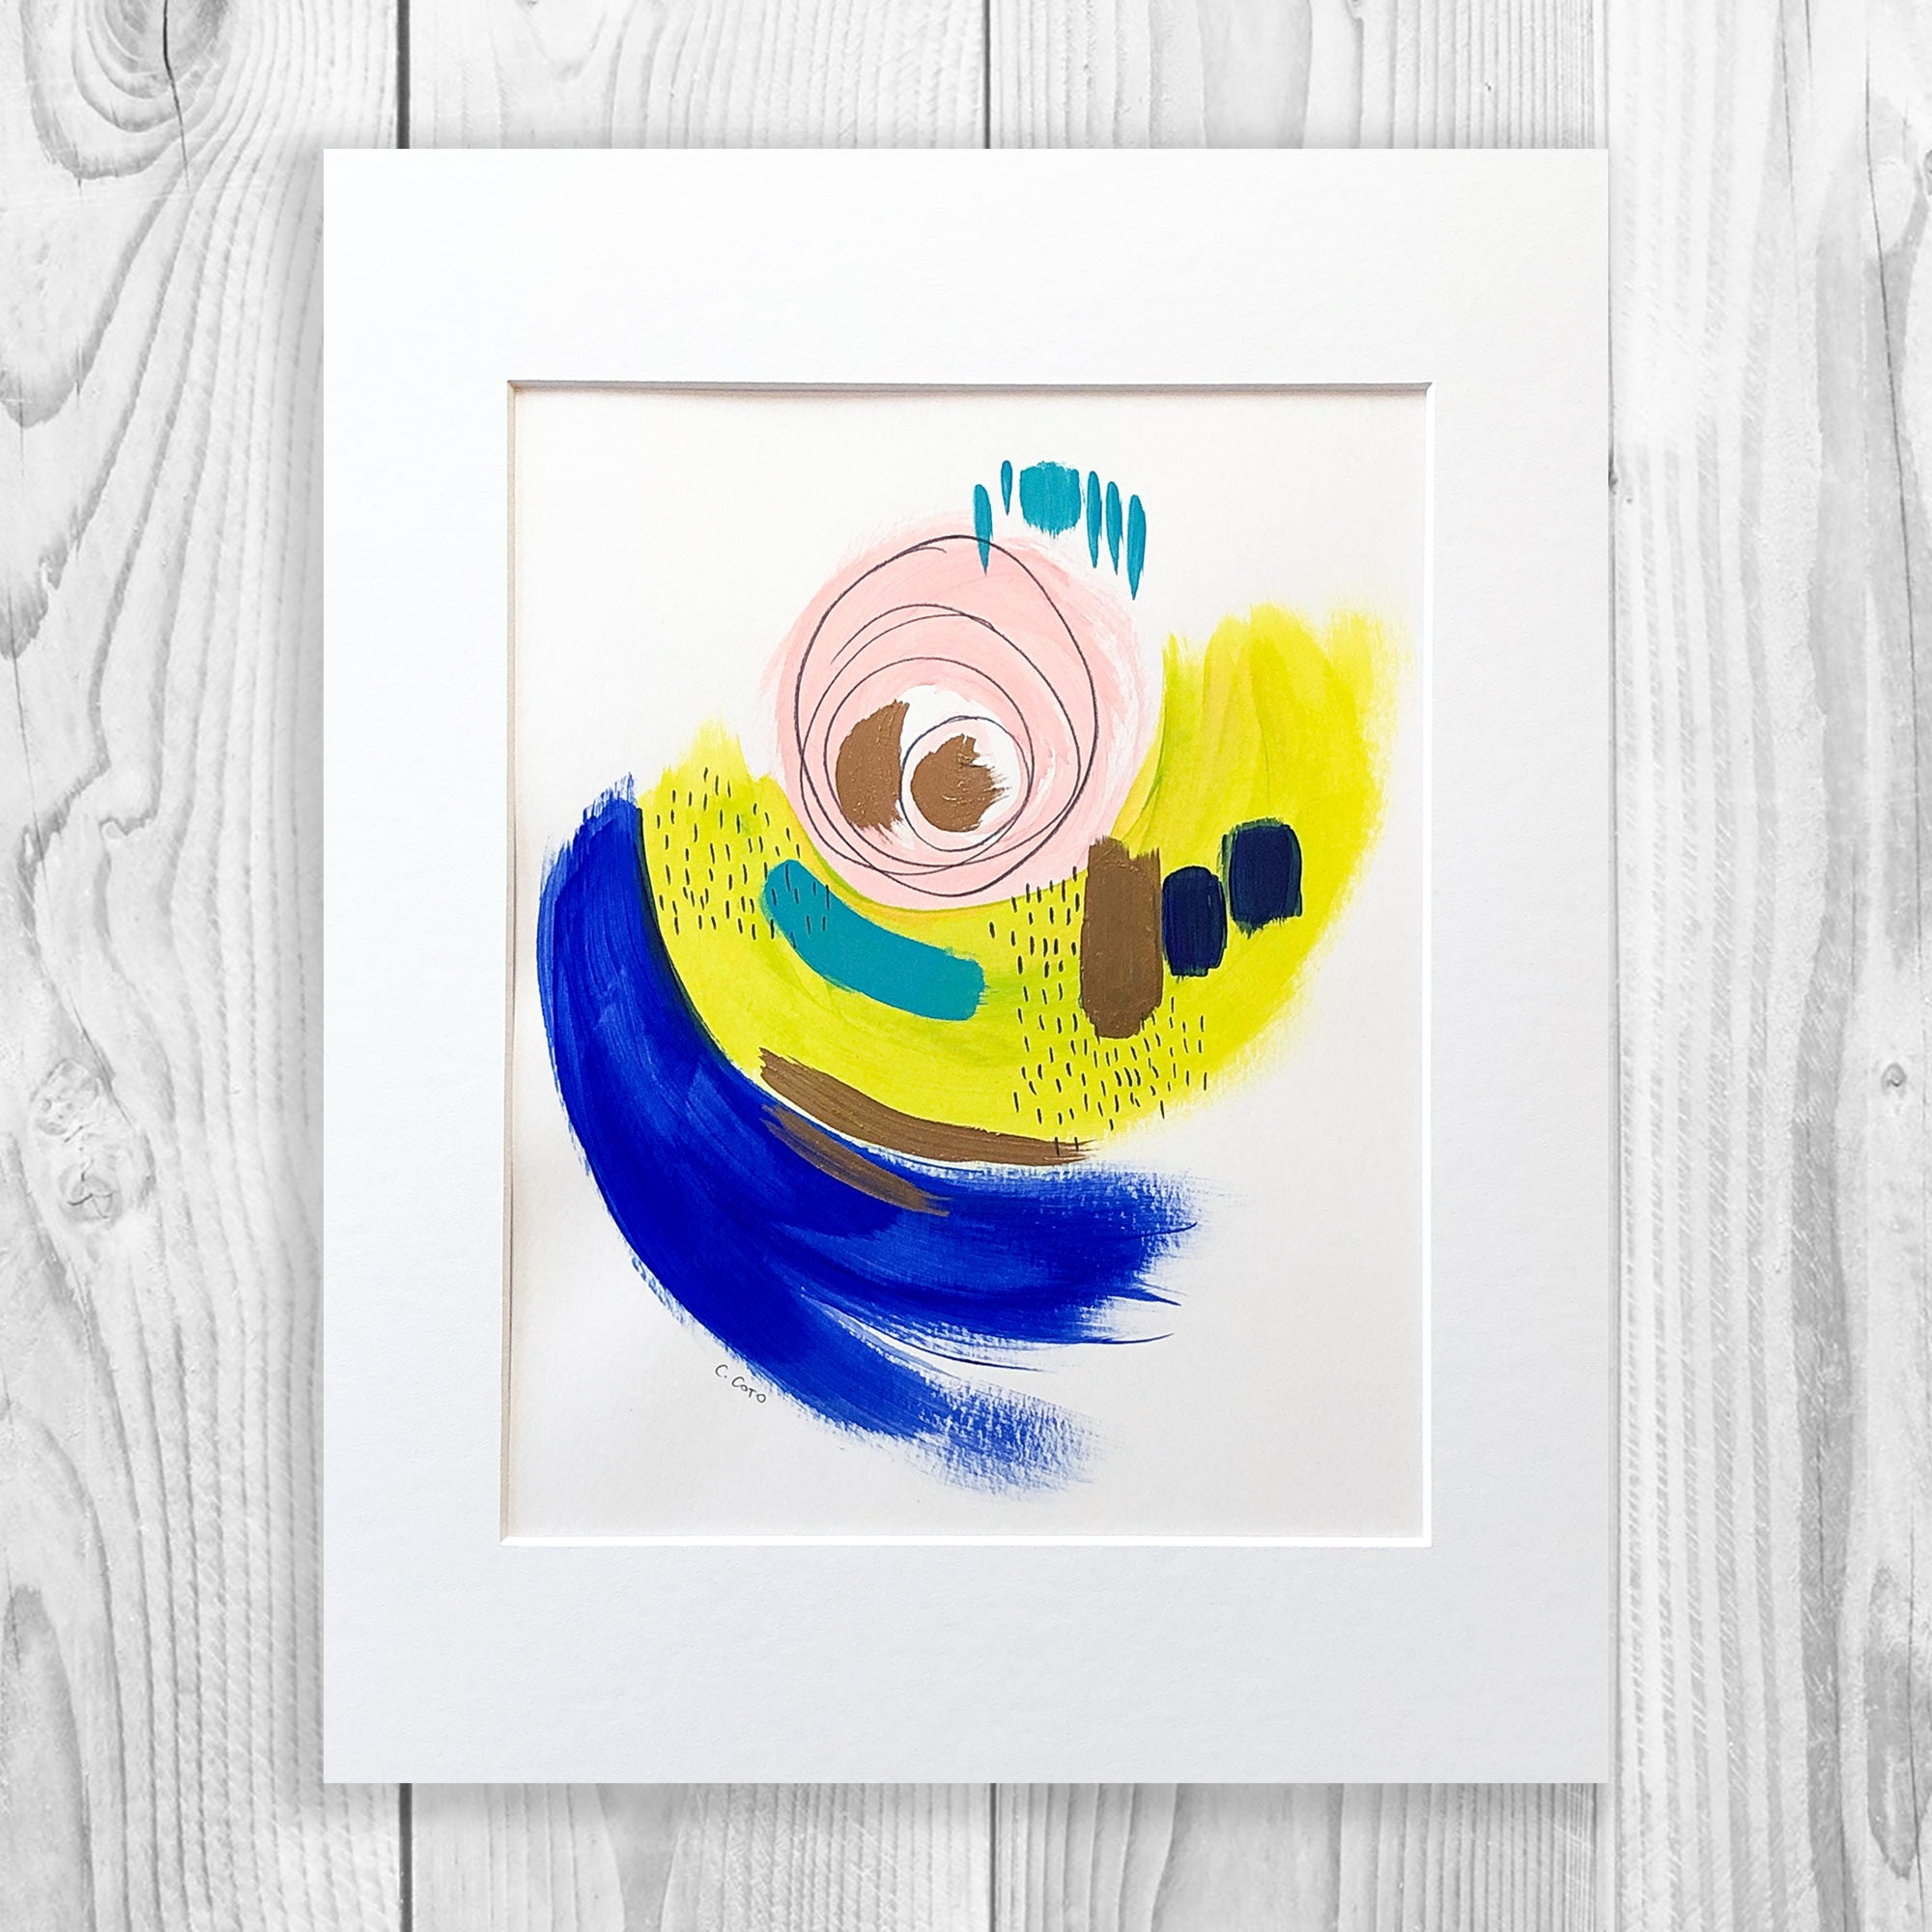 Abstract VII - Unframed, Matted to Standard Frame Size